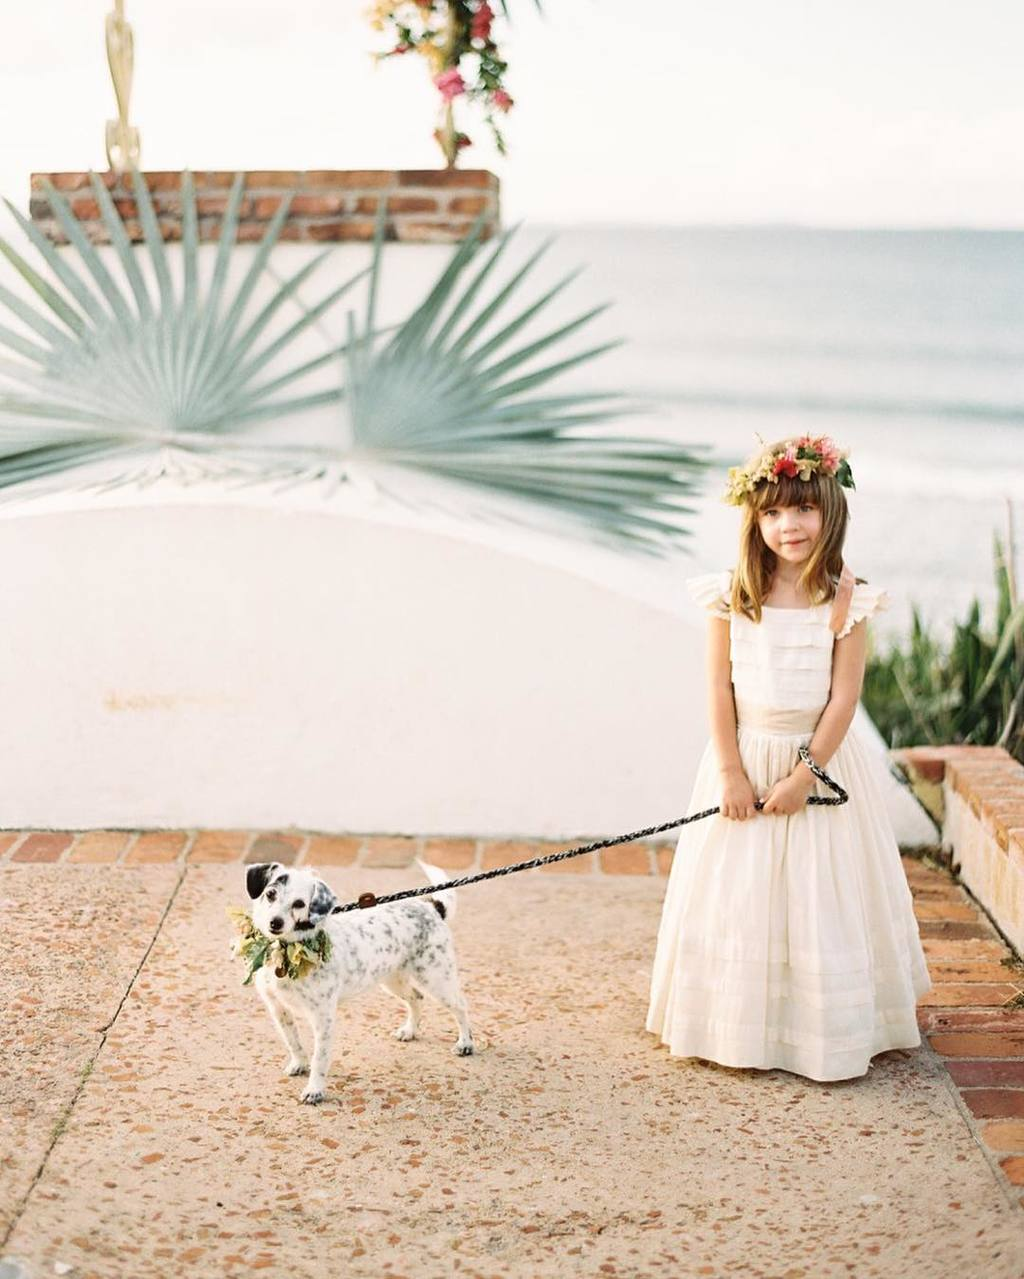 15 Cute Summer Wedding Flower Girl Looks